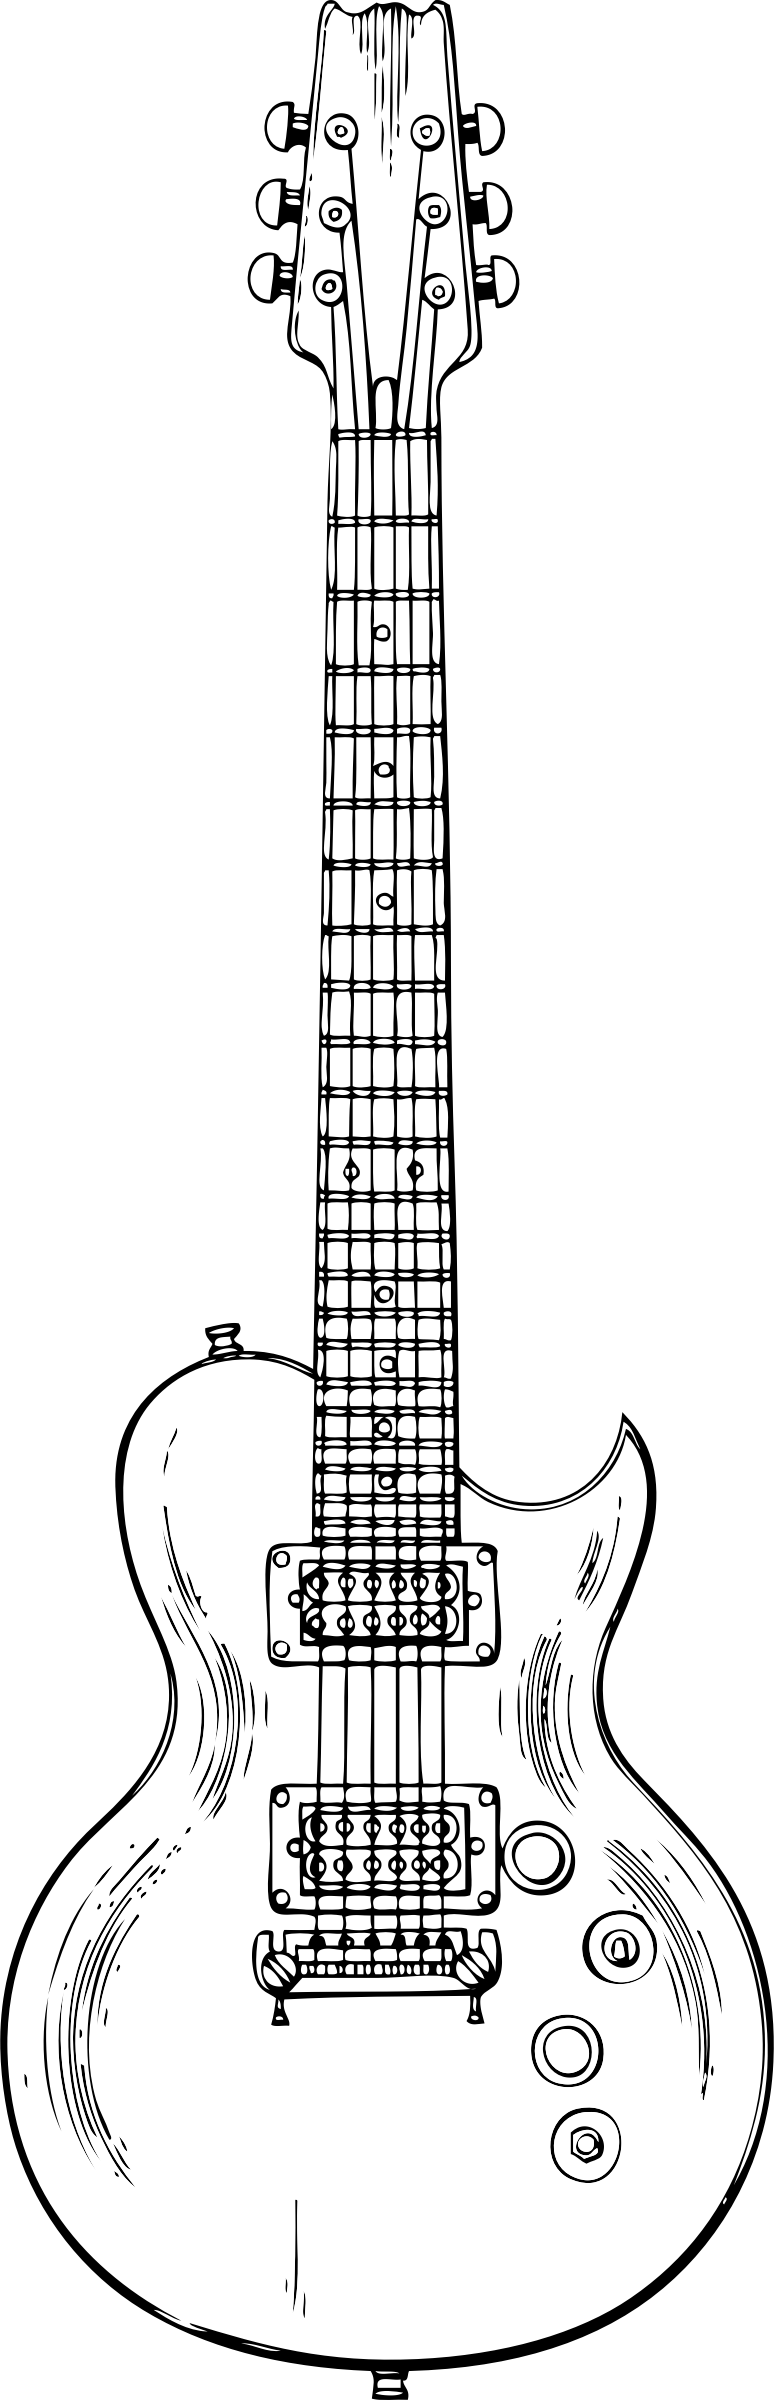 how to sketch a guitar how to draw a rock guitar on the sheet of paper in stages how to guitar a sketch